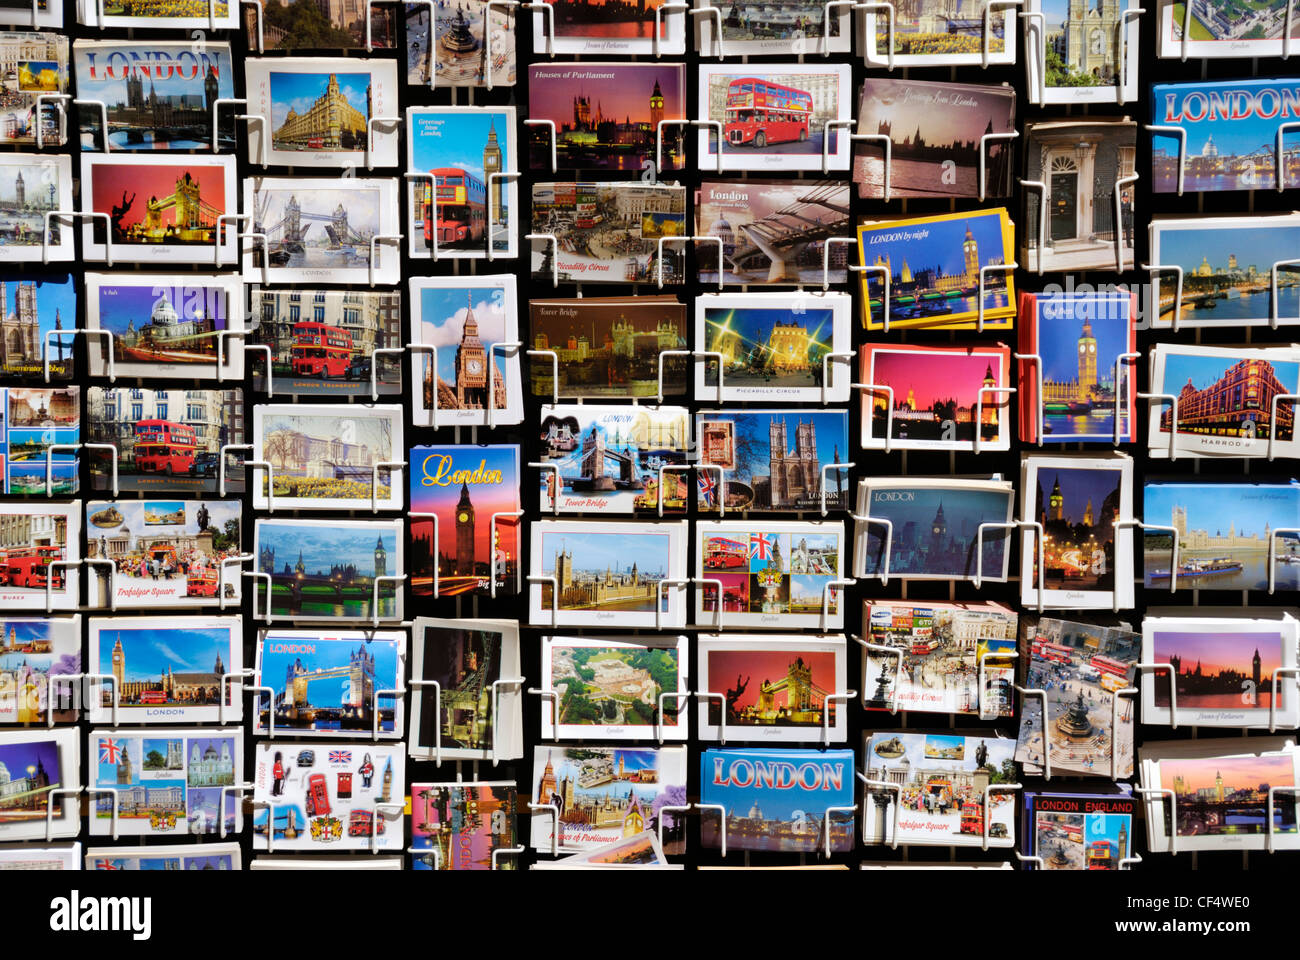 Picture postcards for sale on a stand in London. - Stock Image